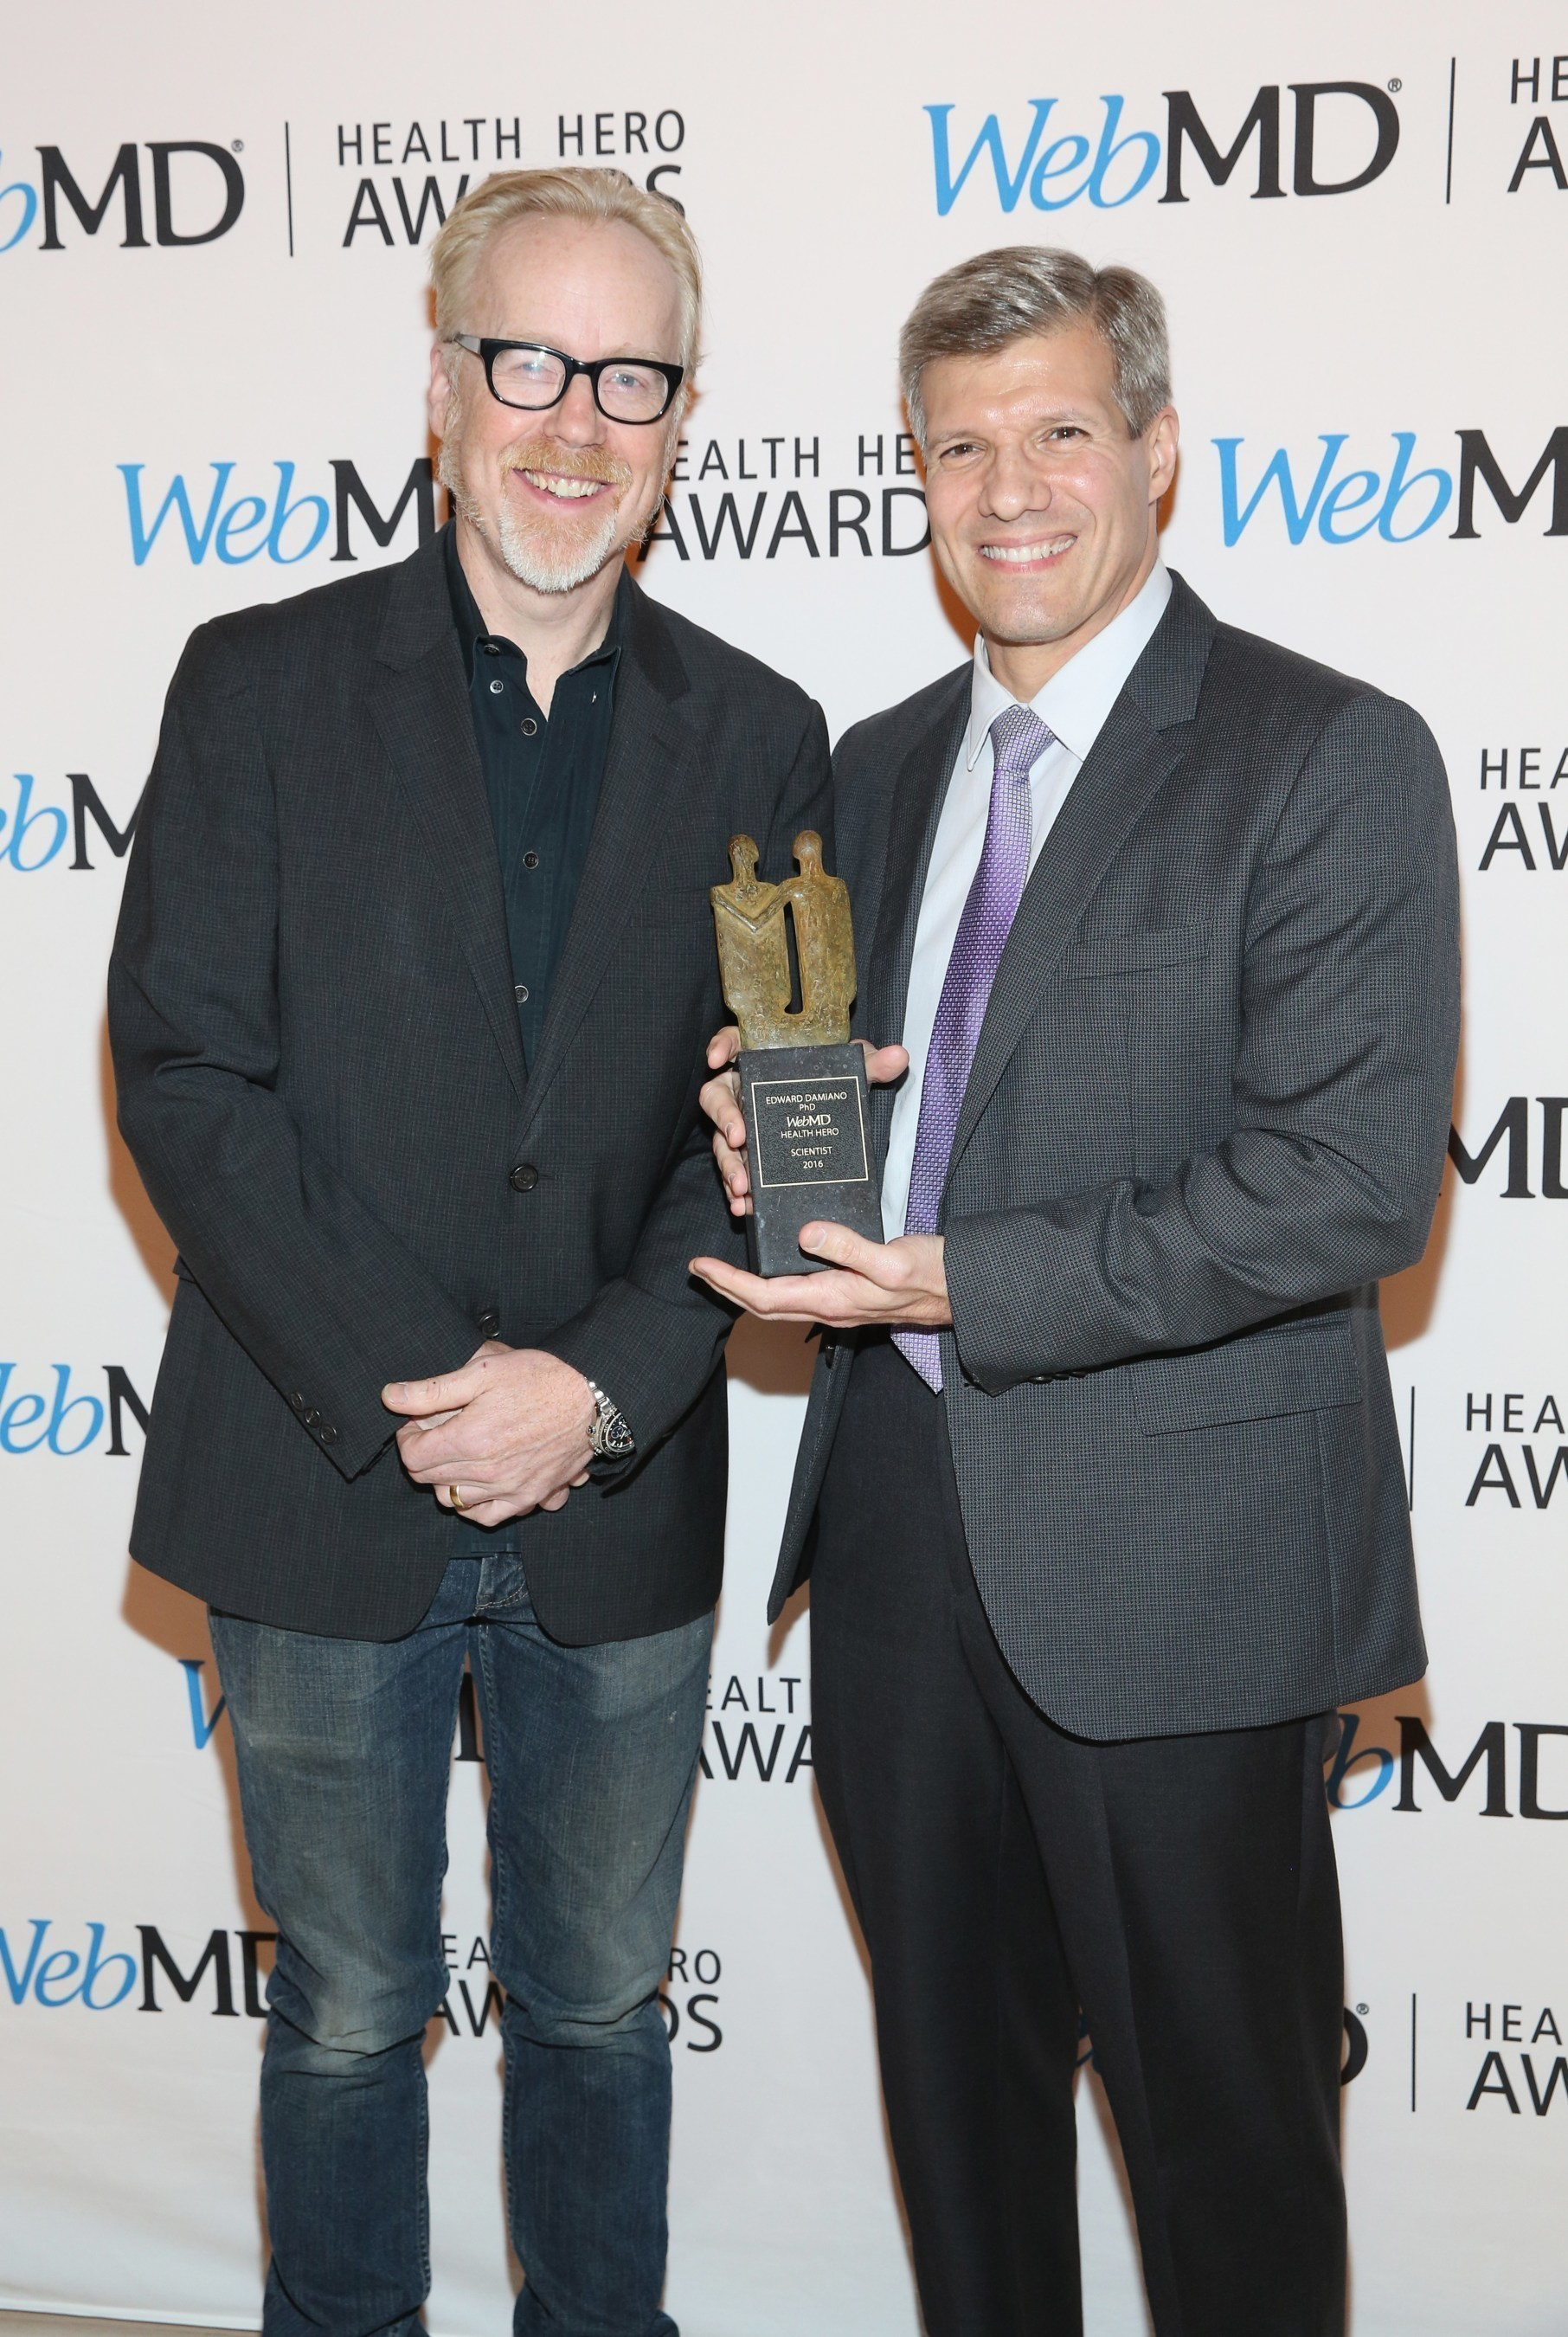 Adam Savage and WebMD Health Hero Scientist Award recipient Ed Damiano, PhD attend the 2016 WebMD Health Heroes Awards on November 3, 2016 in New York City.